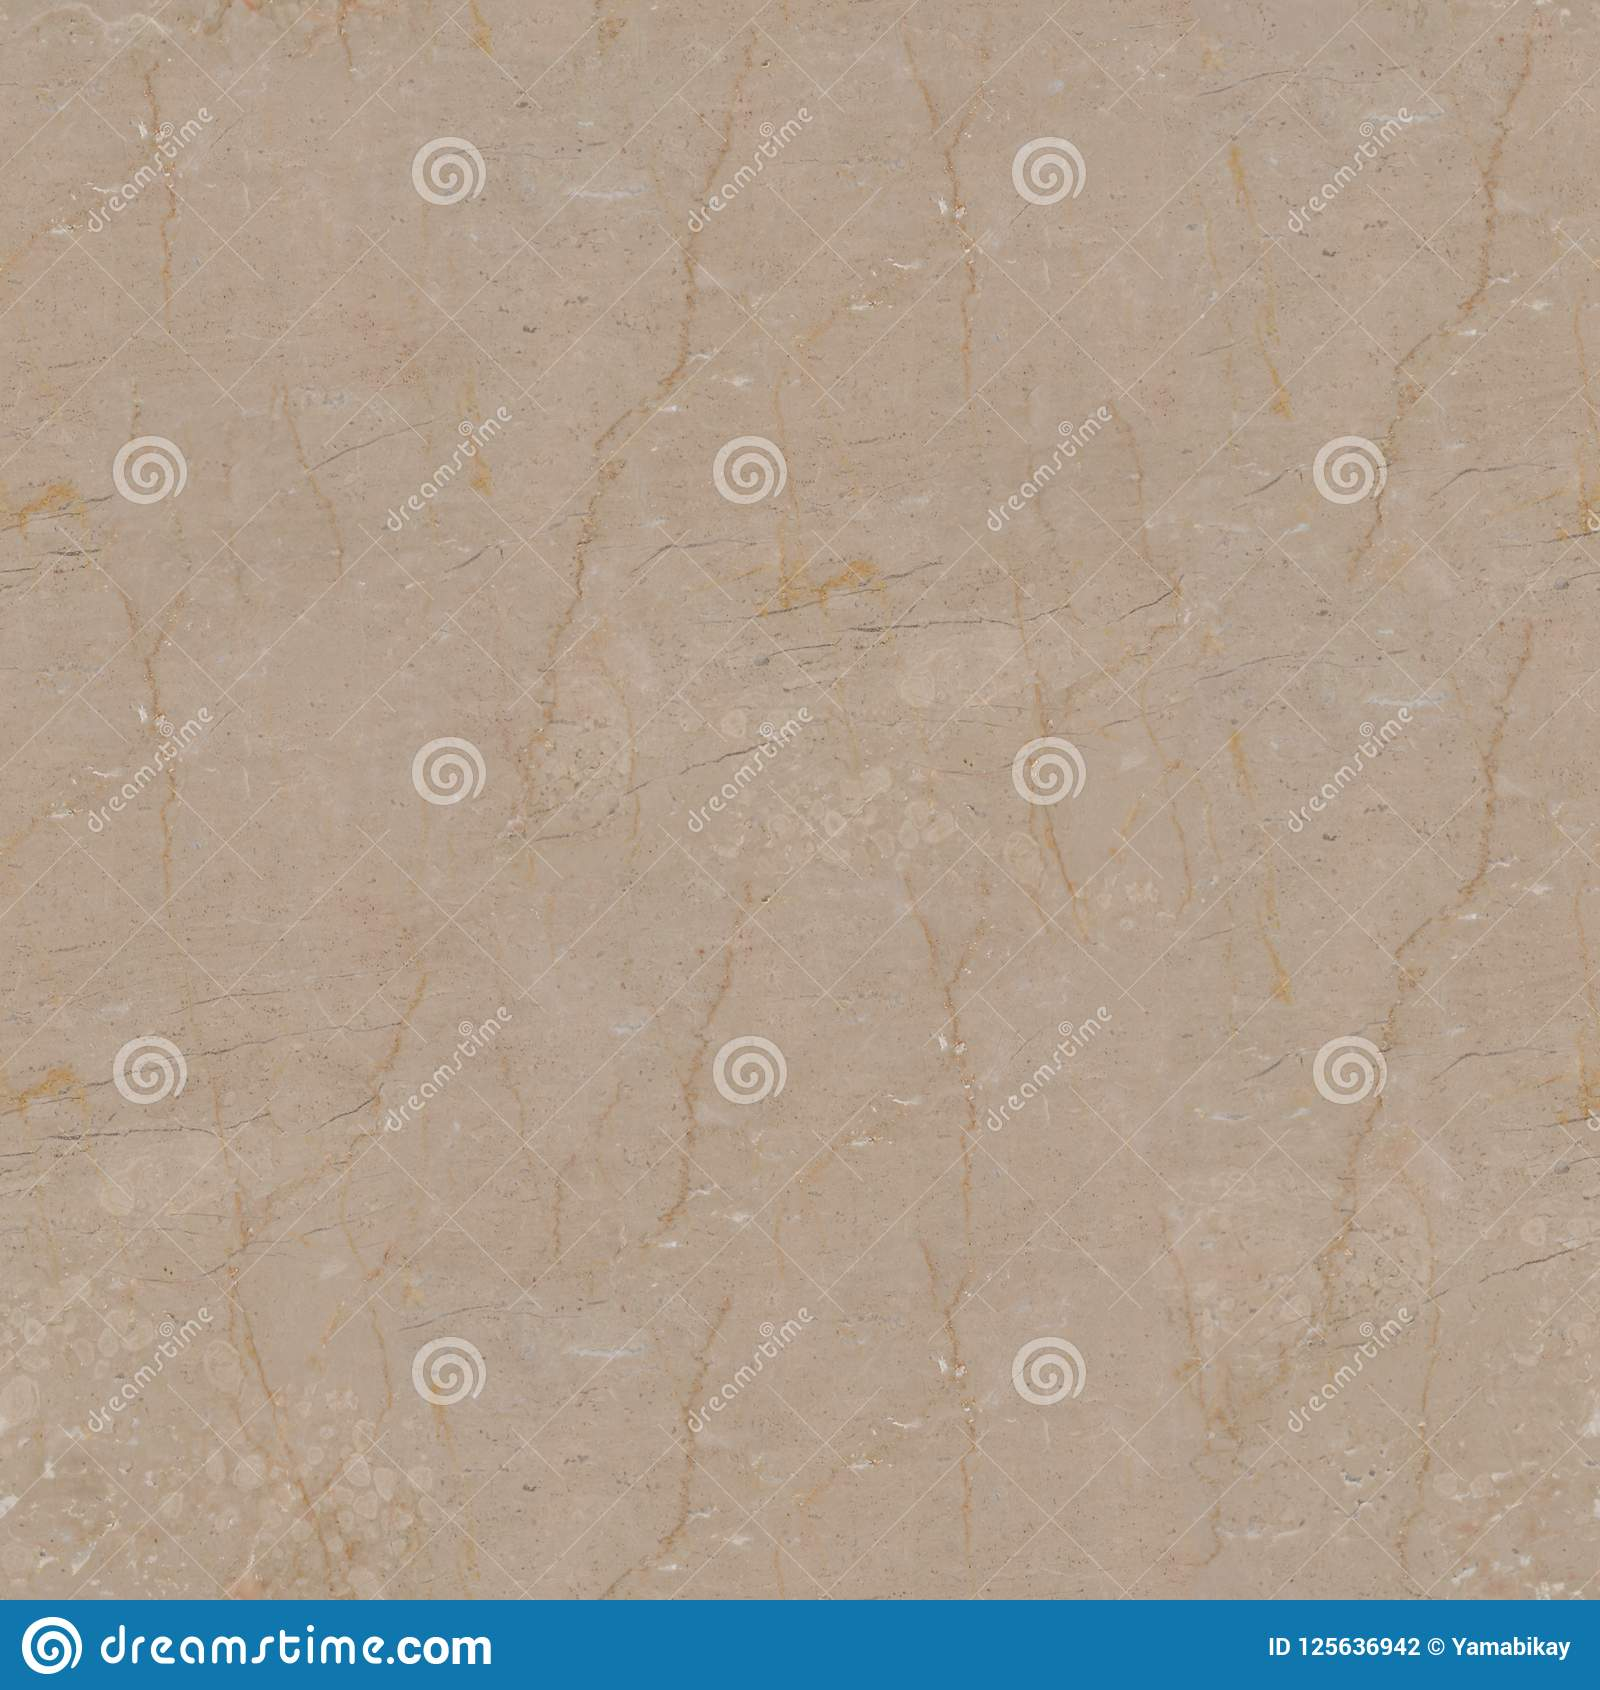 Beige Marble Texture Seamless Square Background Tile Ready